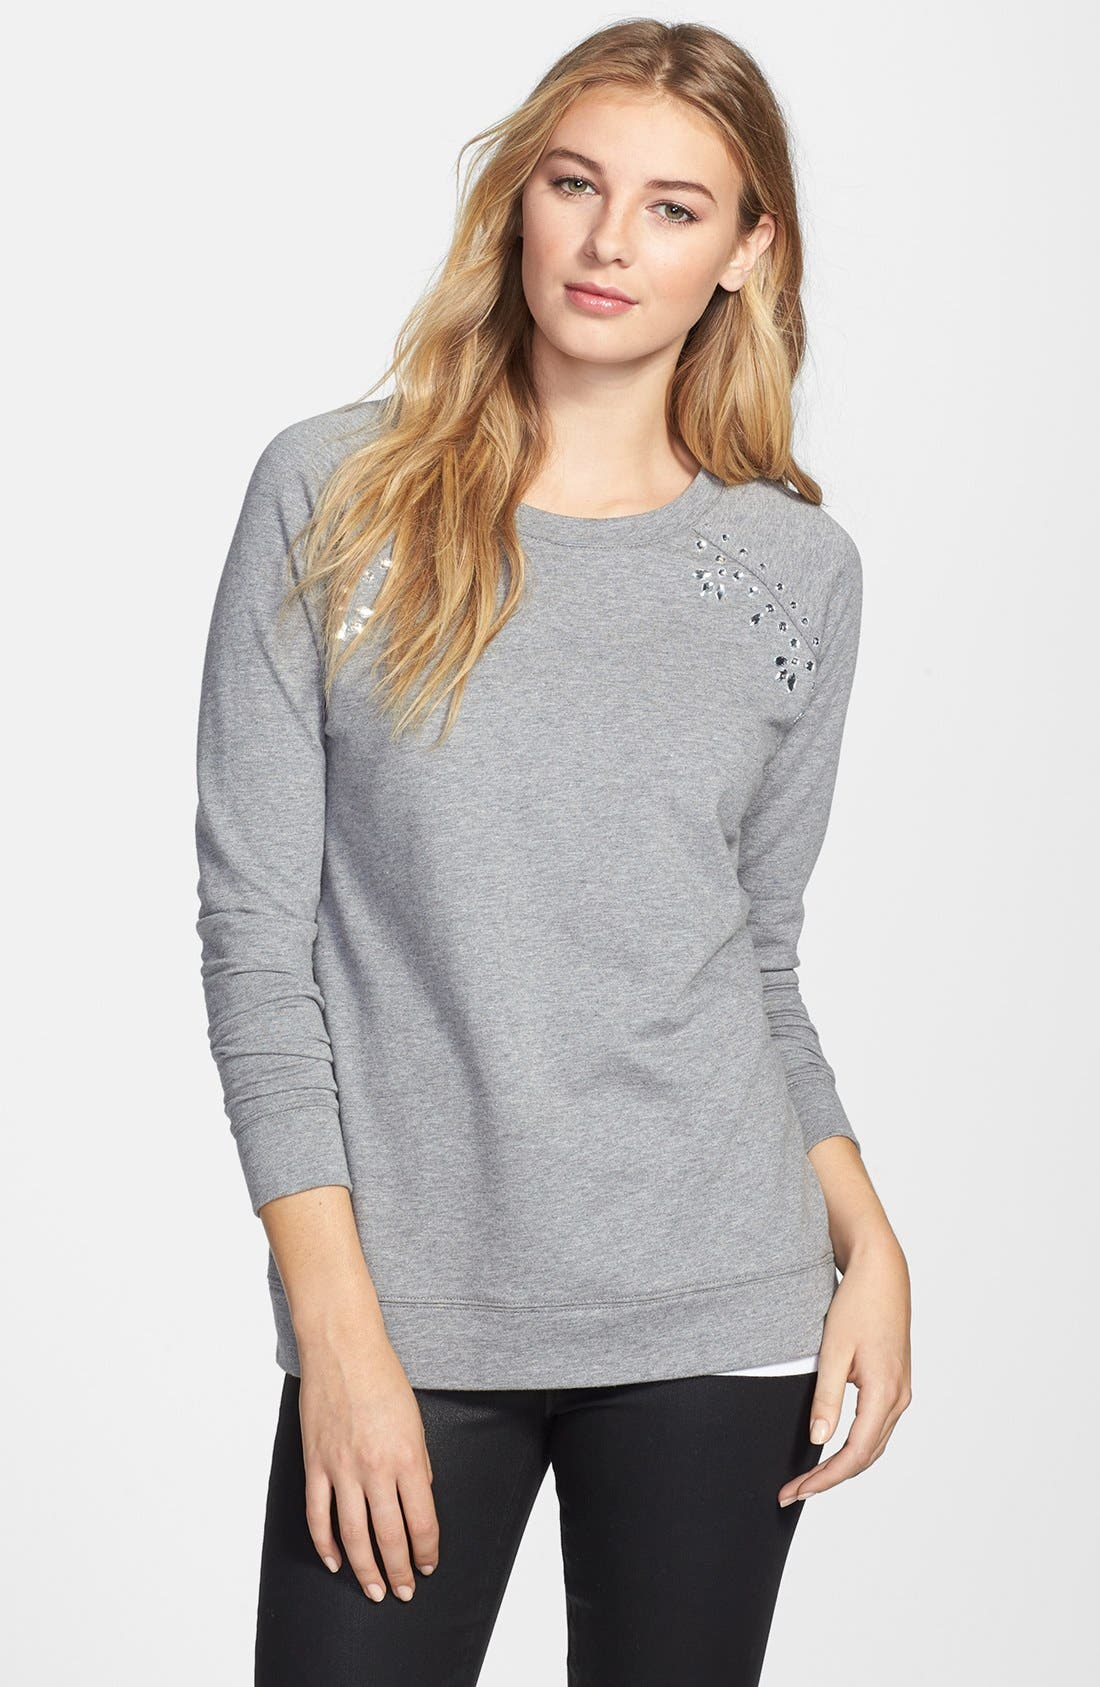 Alternate Image 1 Selected - Two by Vince Camuto Embellished Raglan Sleeve Cotton Blend Sweatshirt